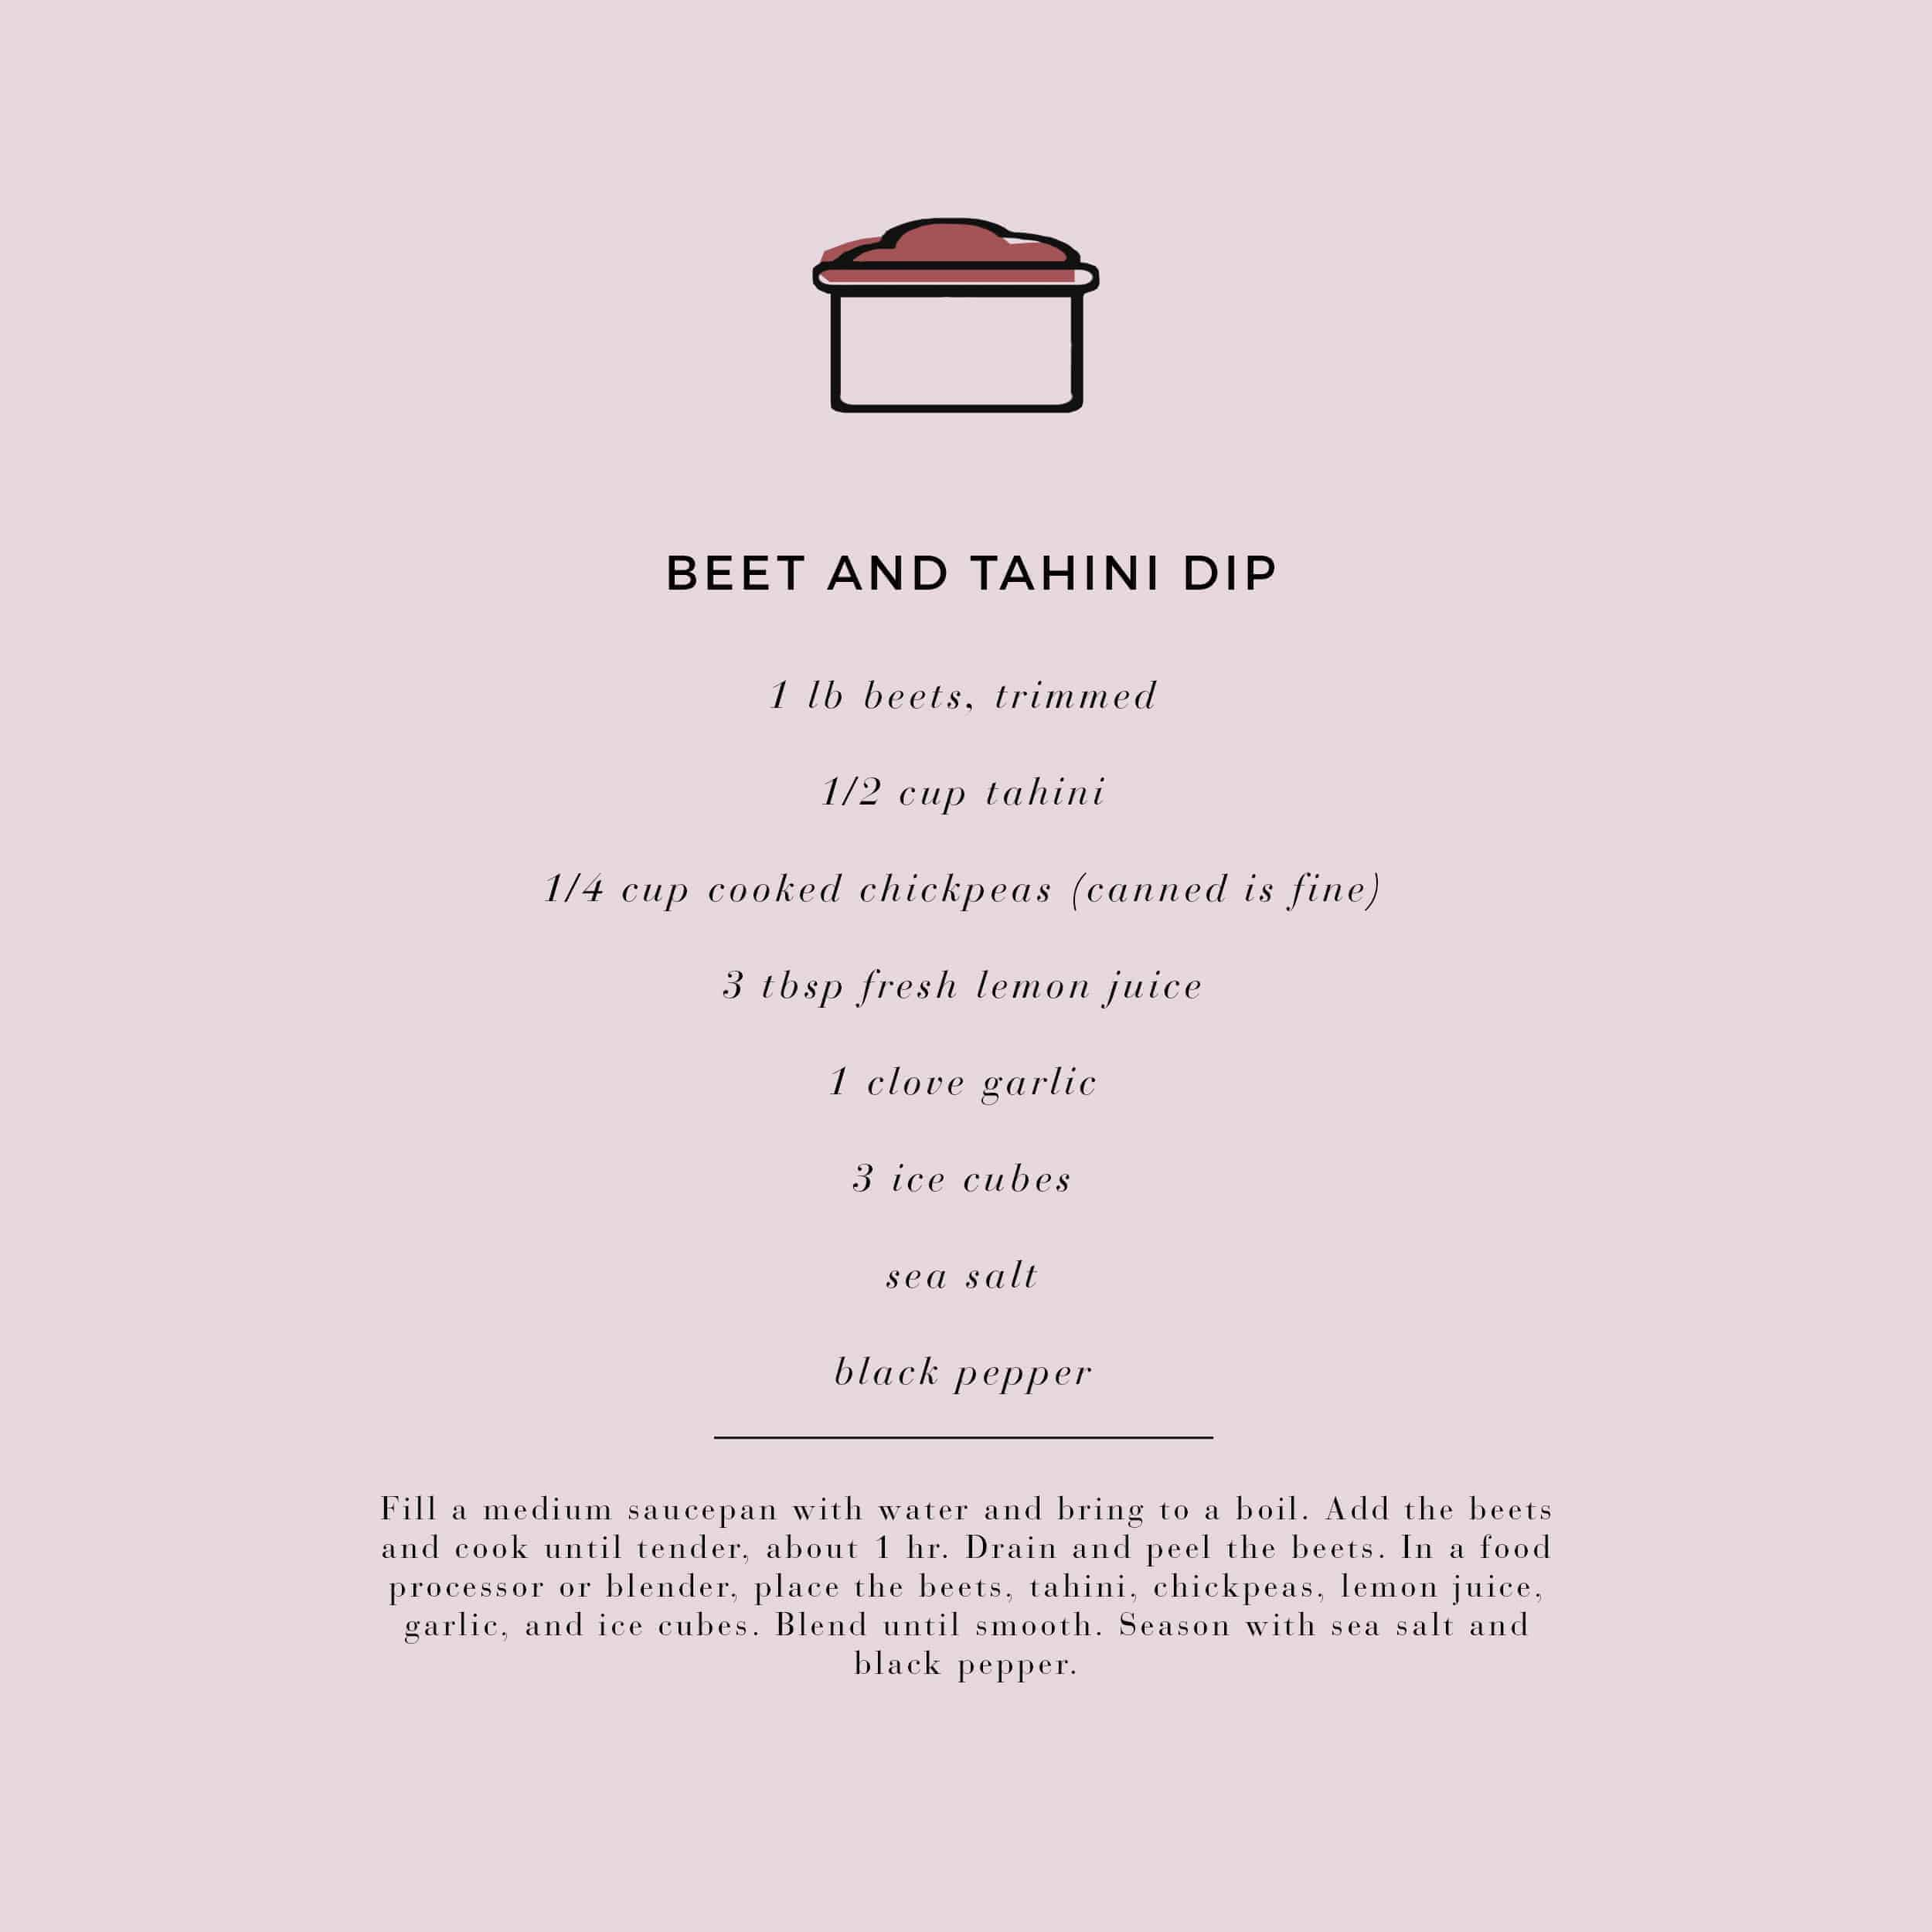 Emily Henderson Waverly Modern English Tudor Holiday Gathering Party Patio Recipe Beet Dip Recipe Card 01